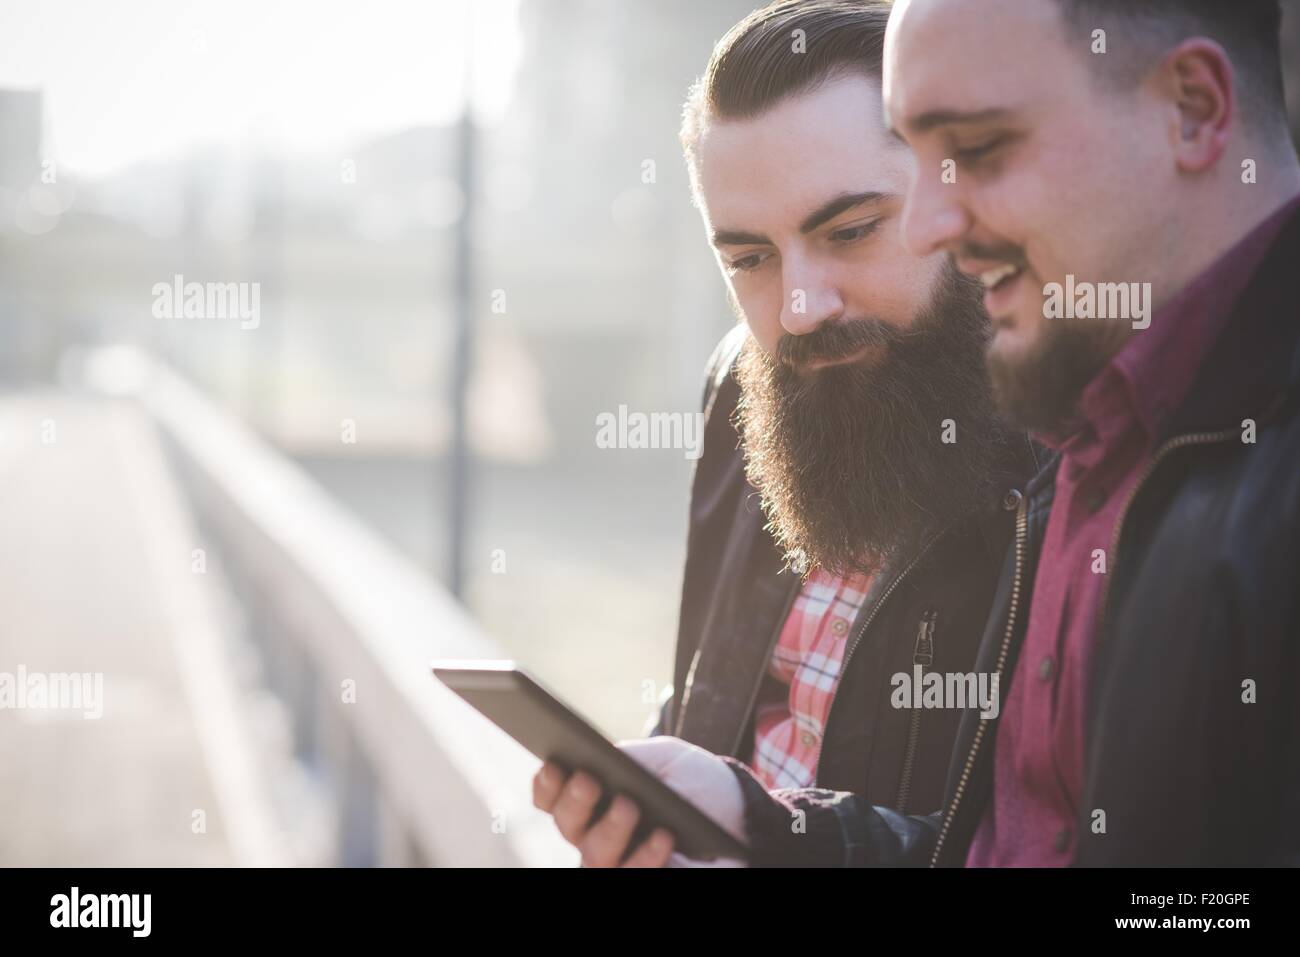 Gay couple using smartphone on pavement Stock Photo